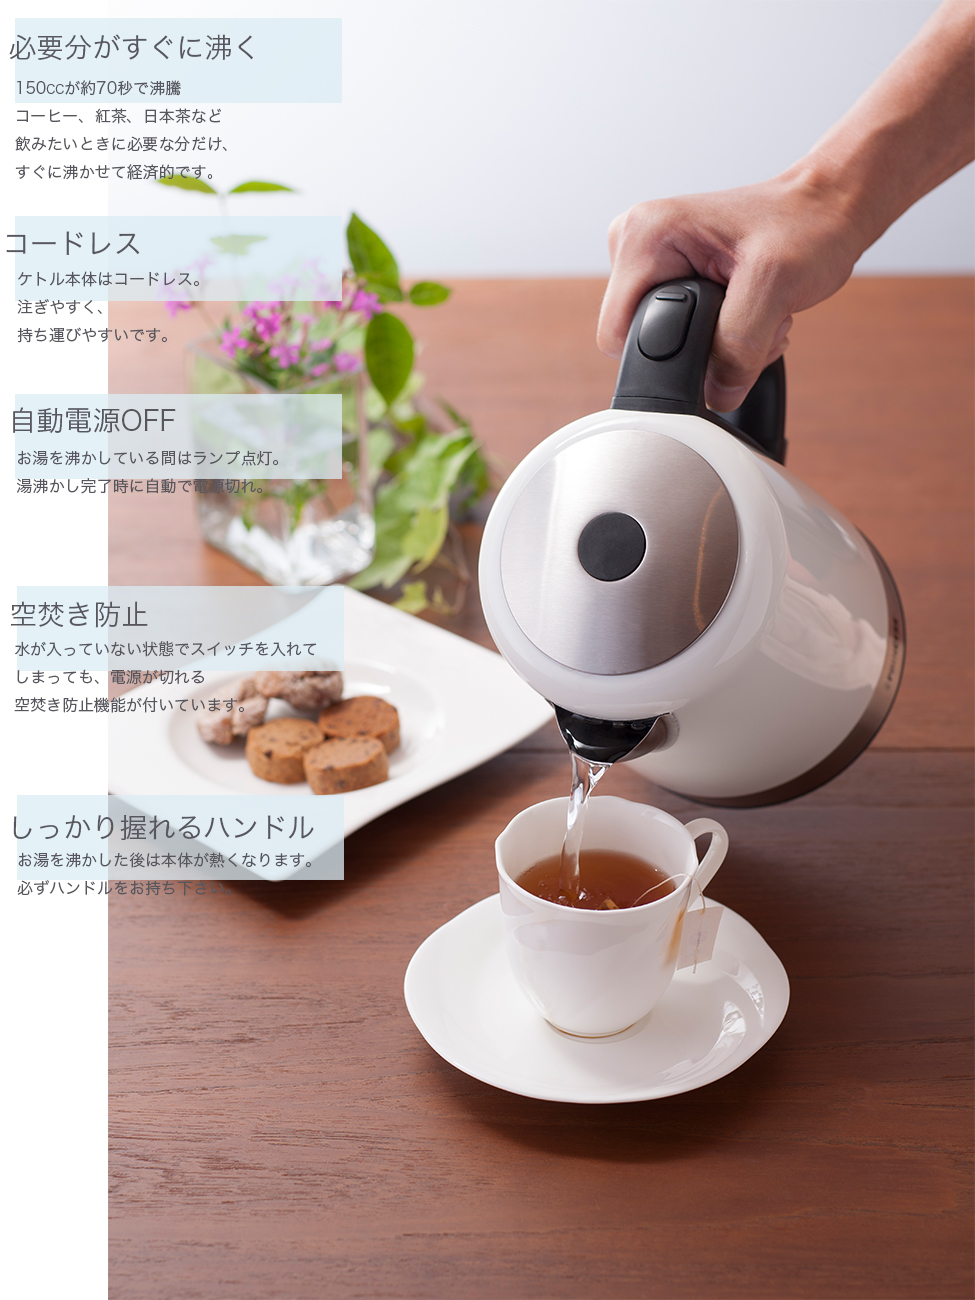 Kettle Stainless Steel Deluxe/PRINCESS